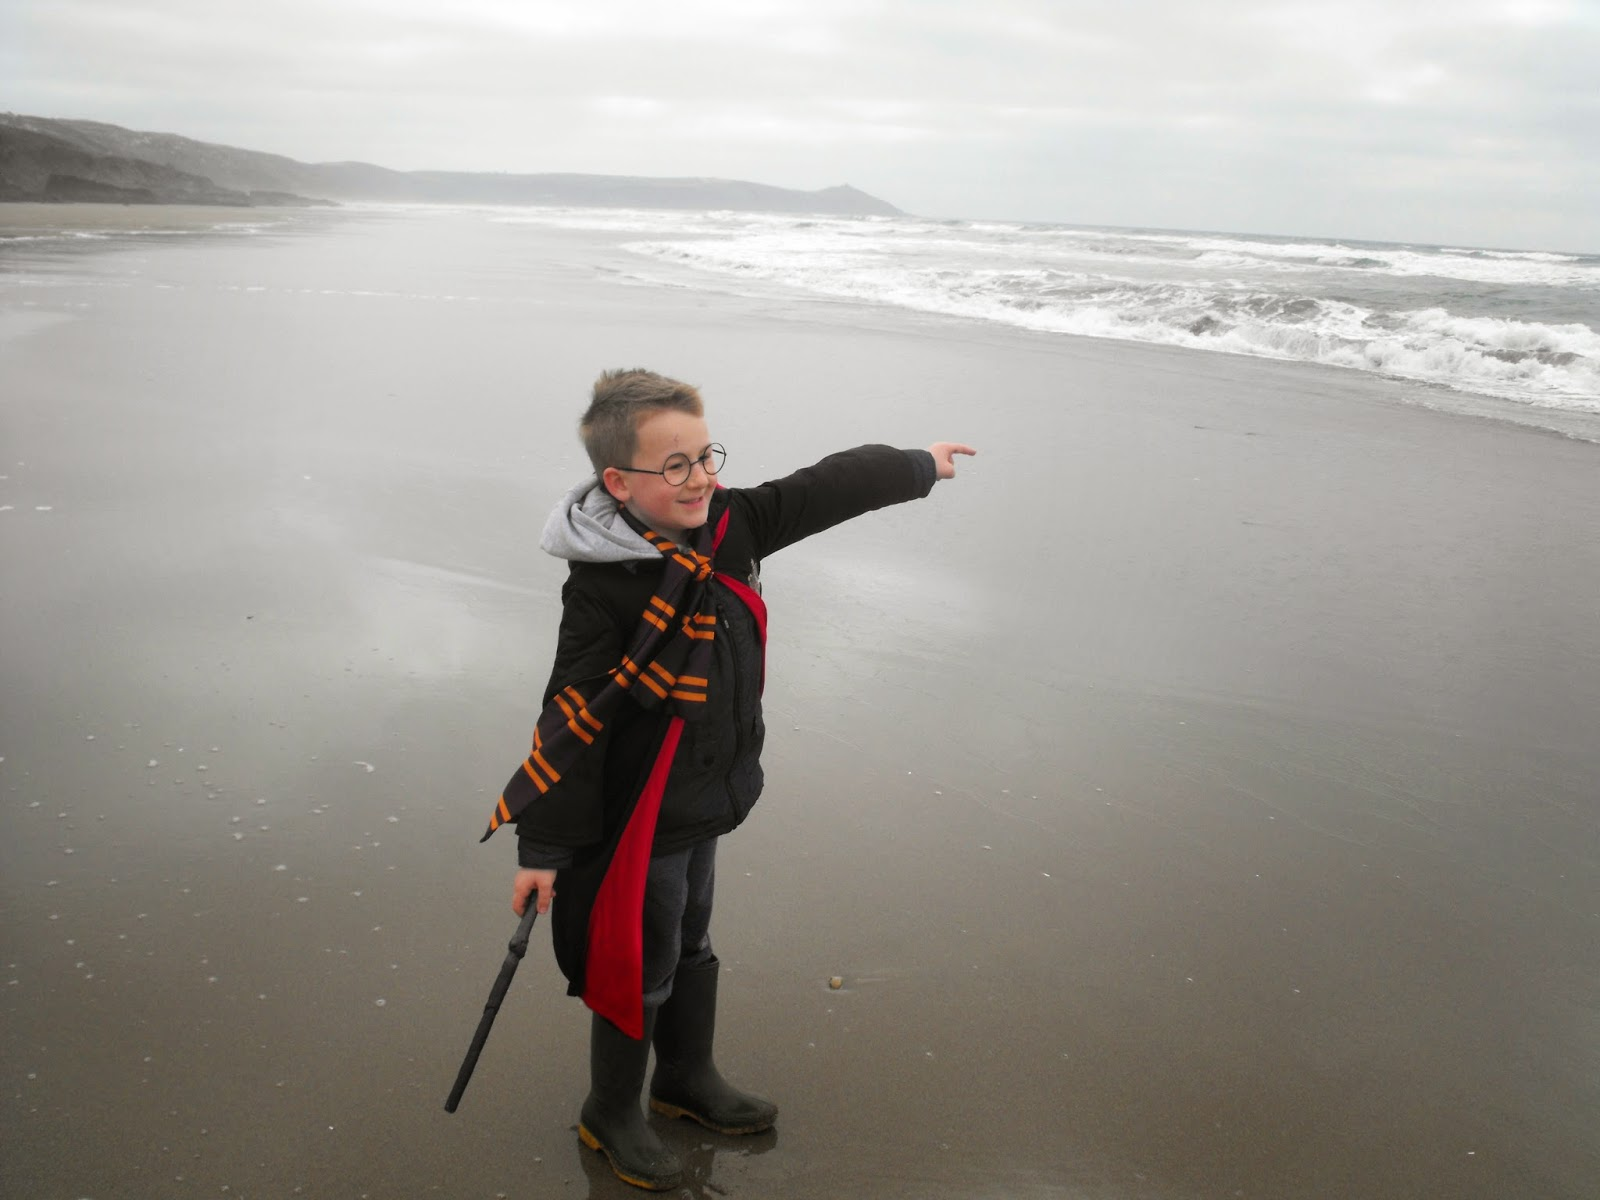 harry, potter, costume, beach, rame, cornwall, mill brook, plymouth